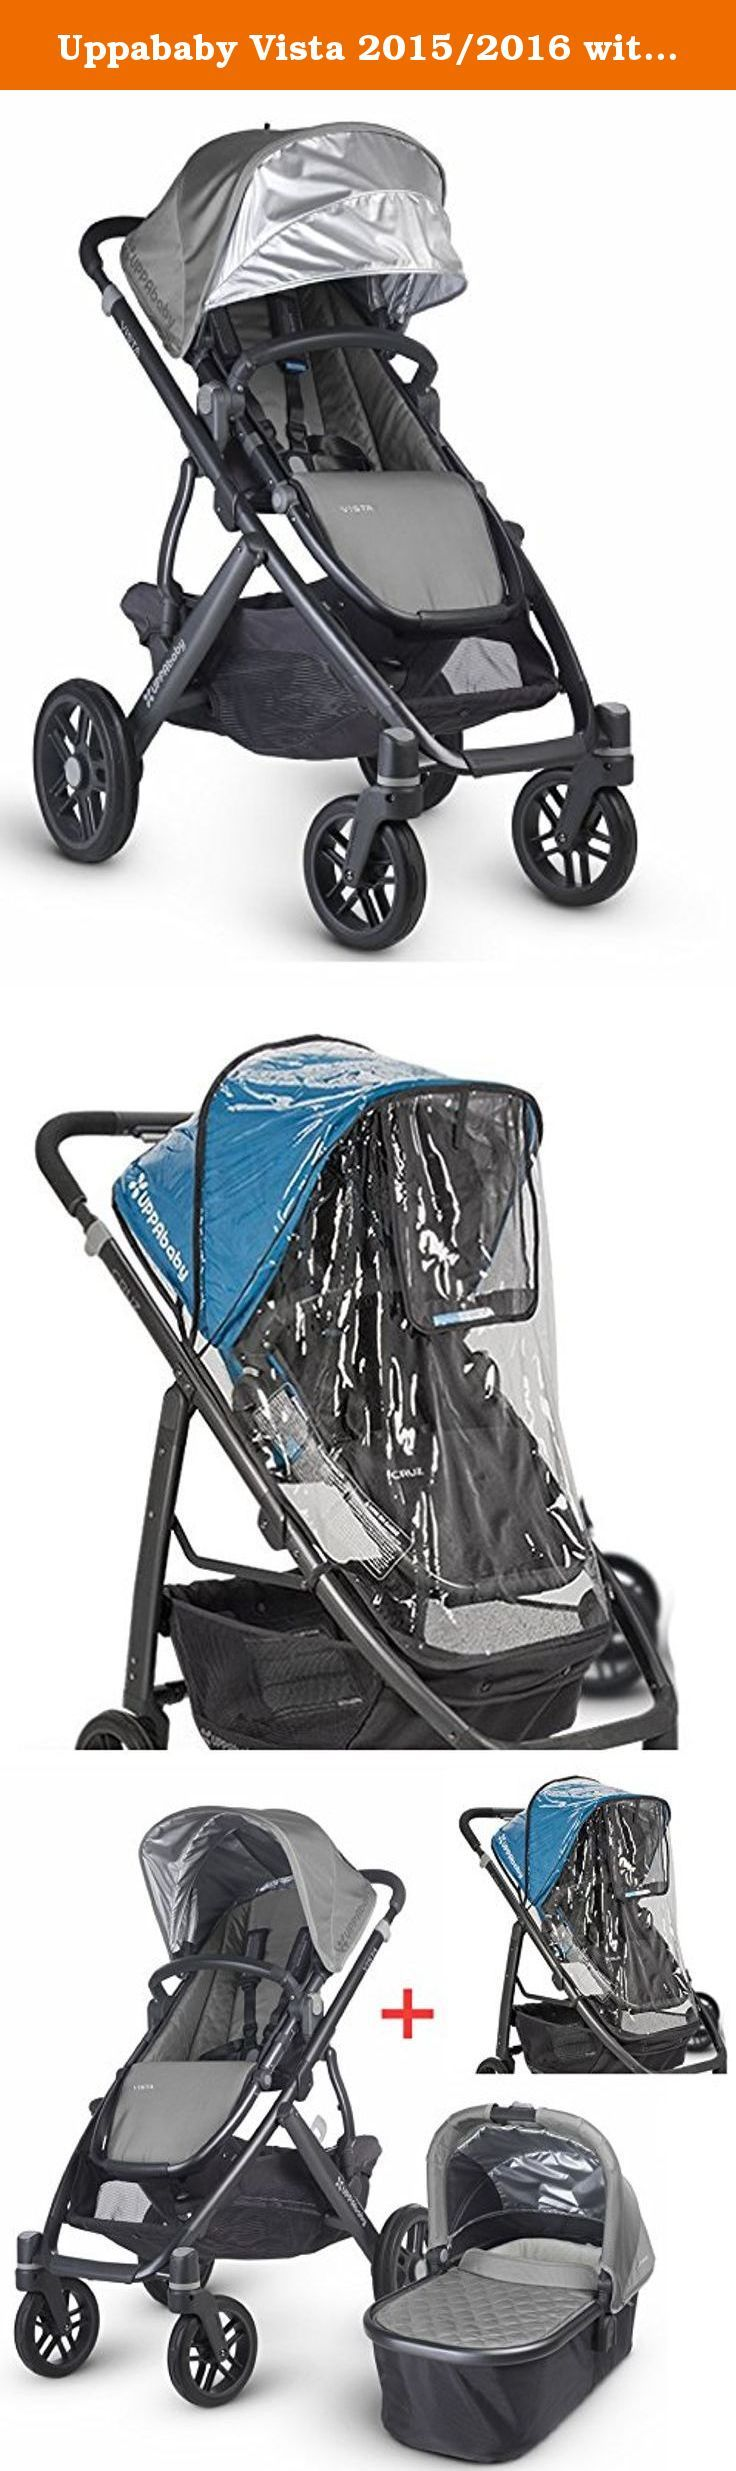 uppababy rain cover instructions